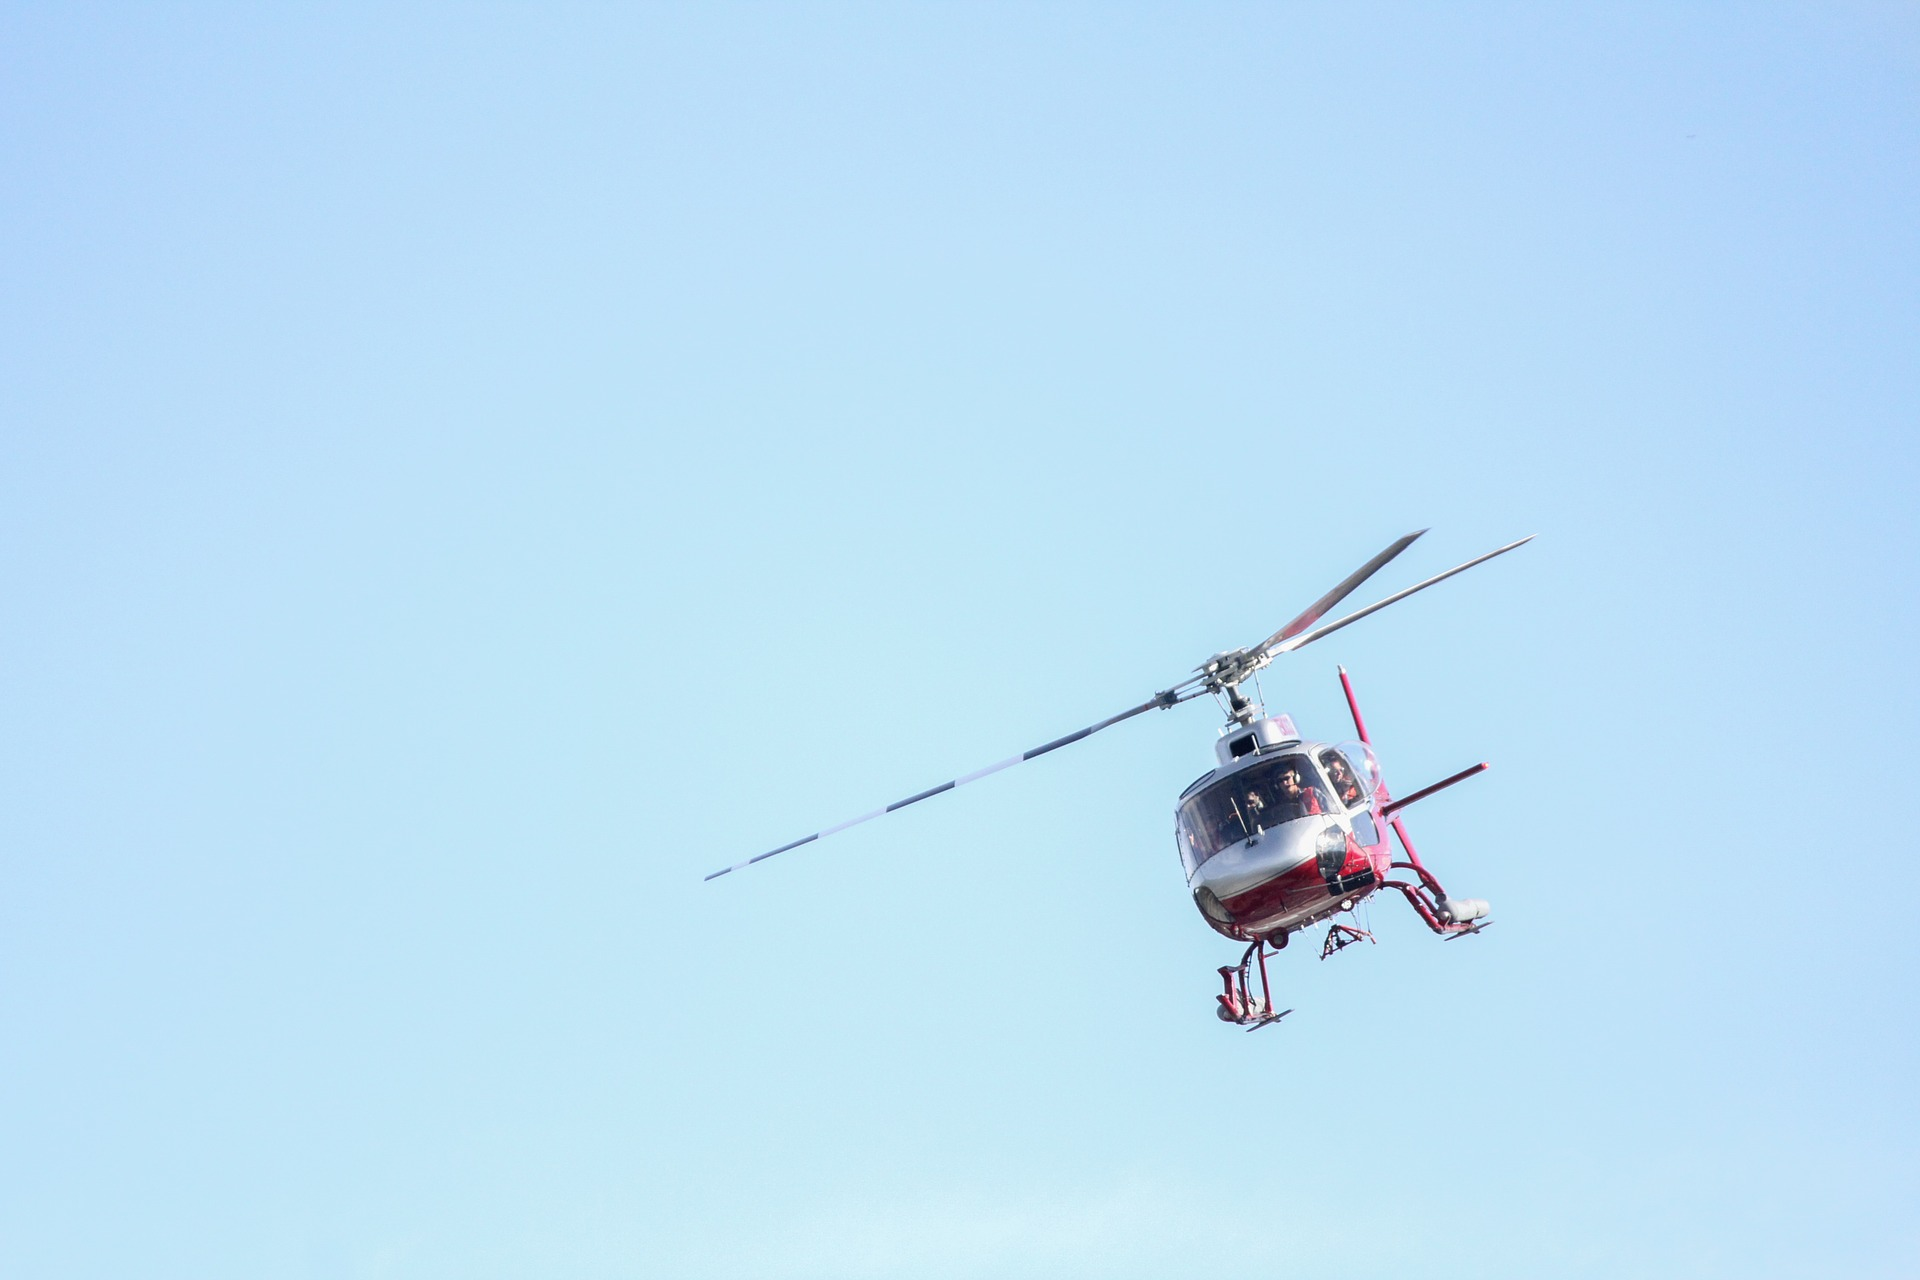 helicopter-784273_1920.jpg